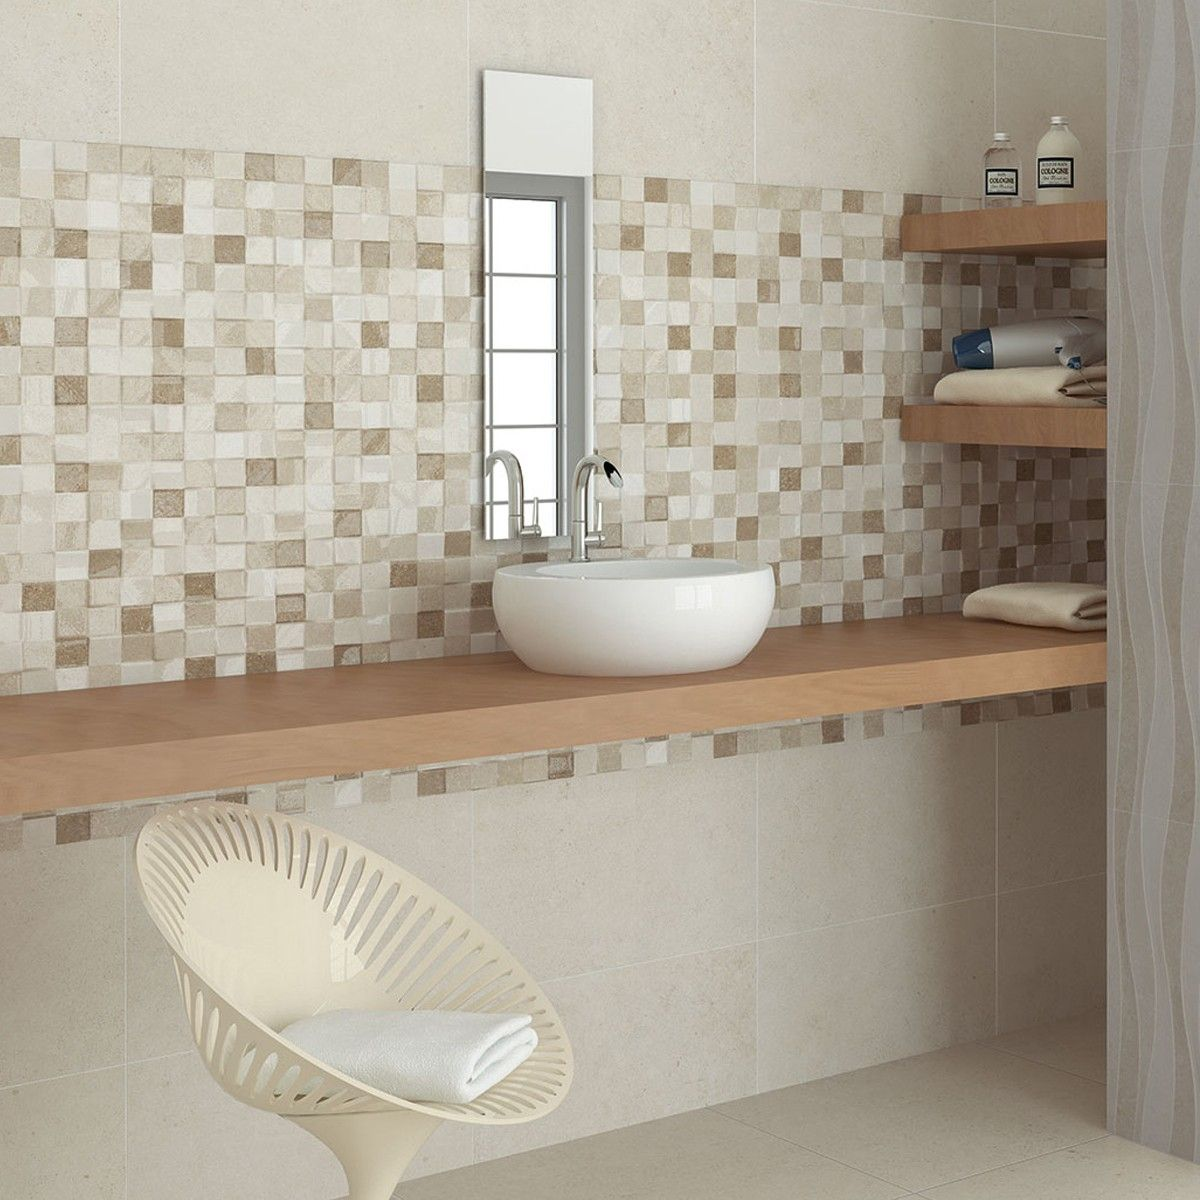 55x33 3 adelaide beige mosaic bathroom wall tiles wall Bathroom tile ideas mosaic